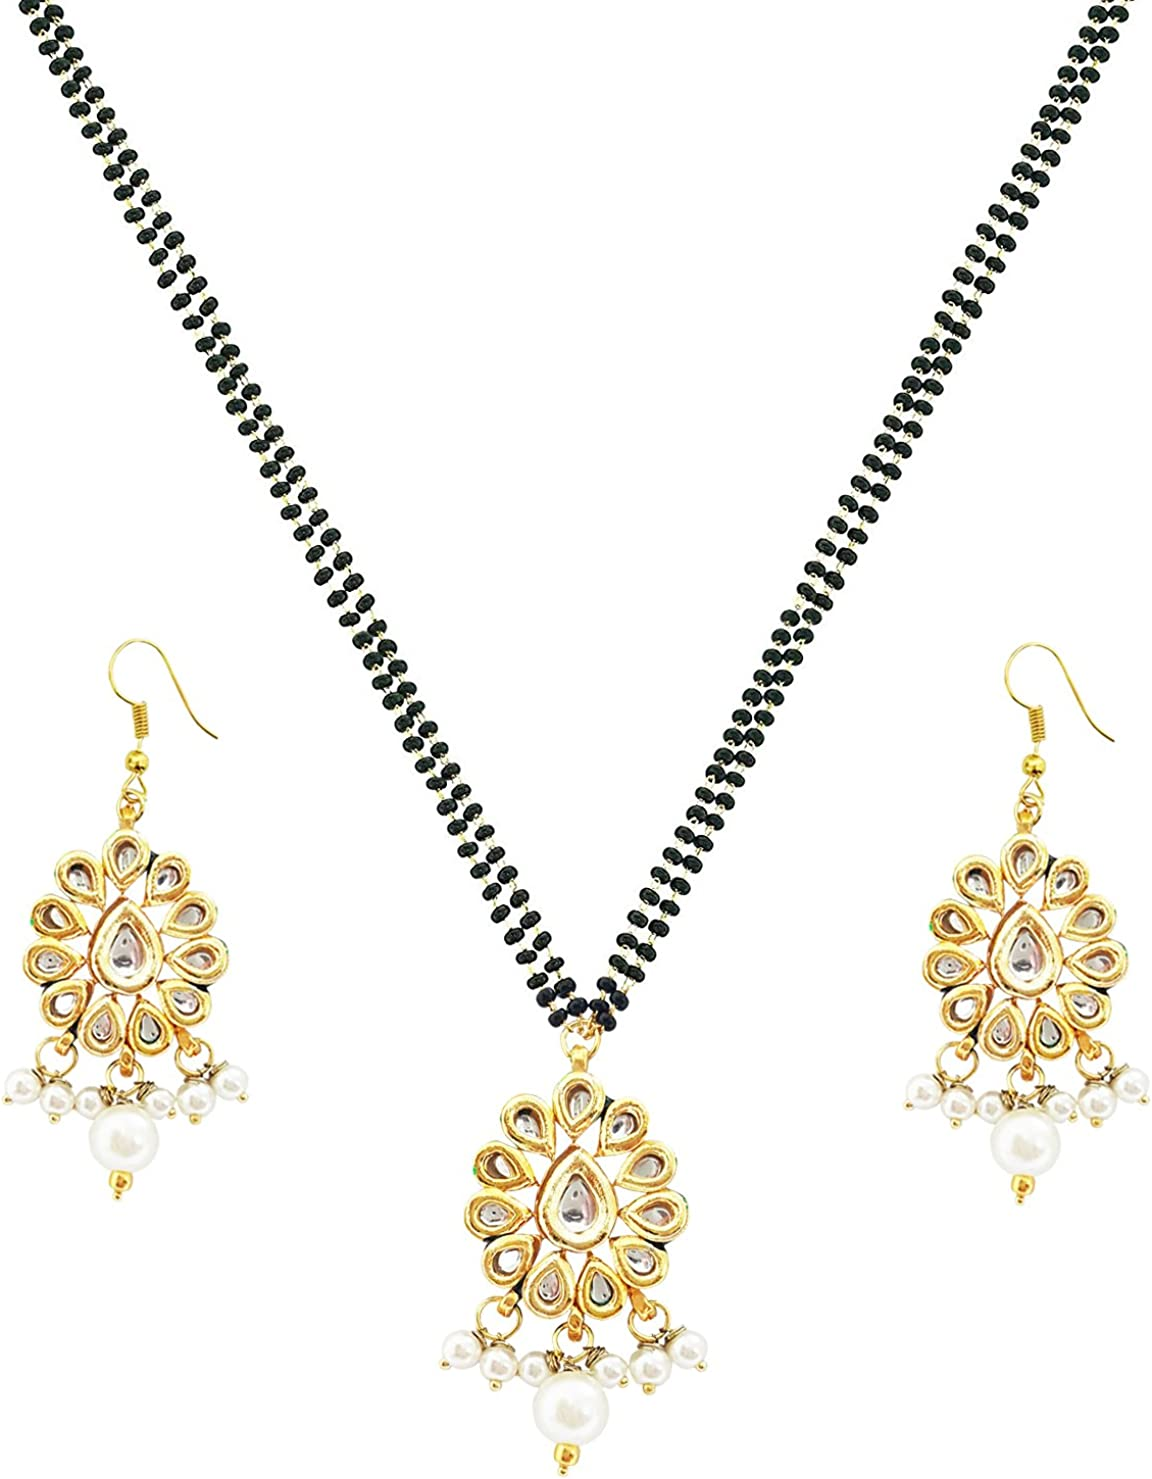 Mehrunnisa Contemporary Kundan Pendant with Mangalsutra Necklace & Earrings Set for Women (JWL1559)